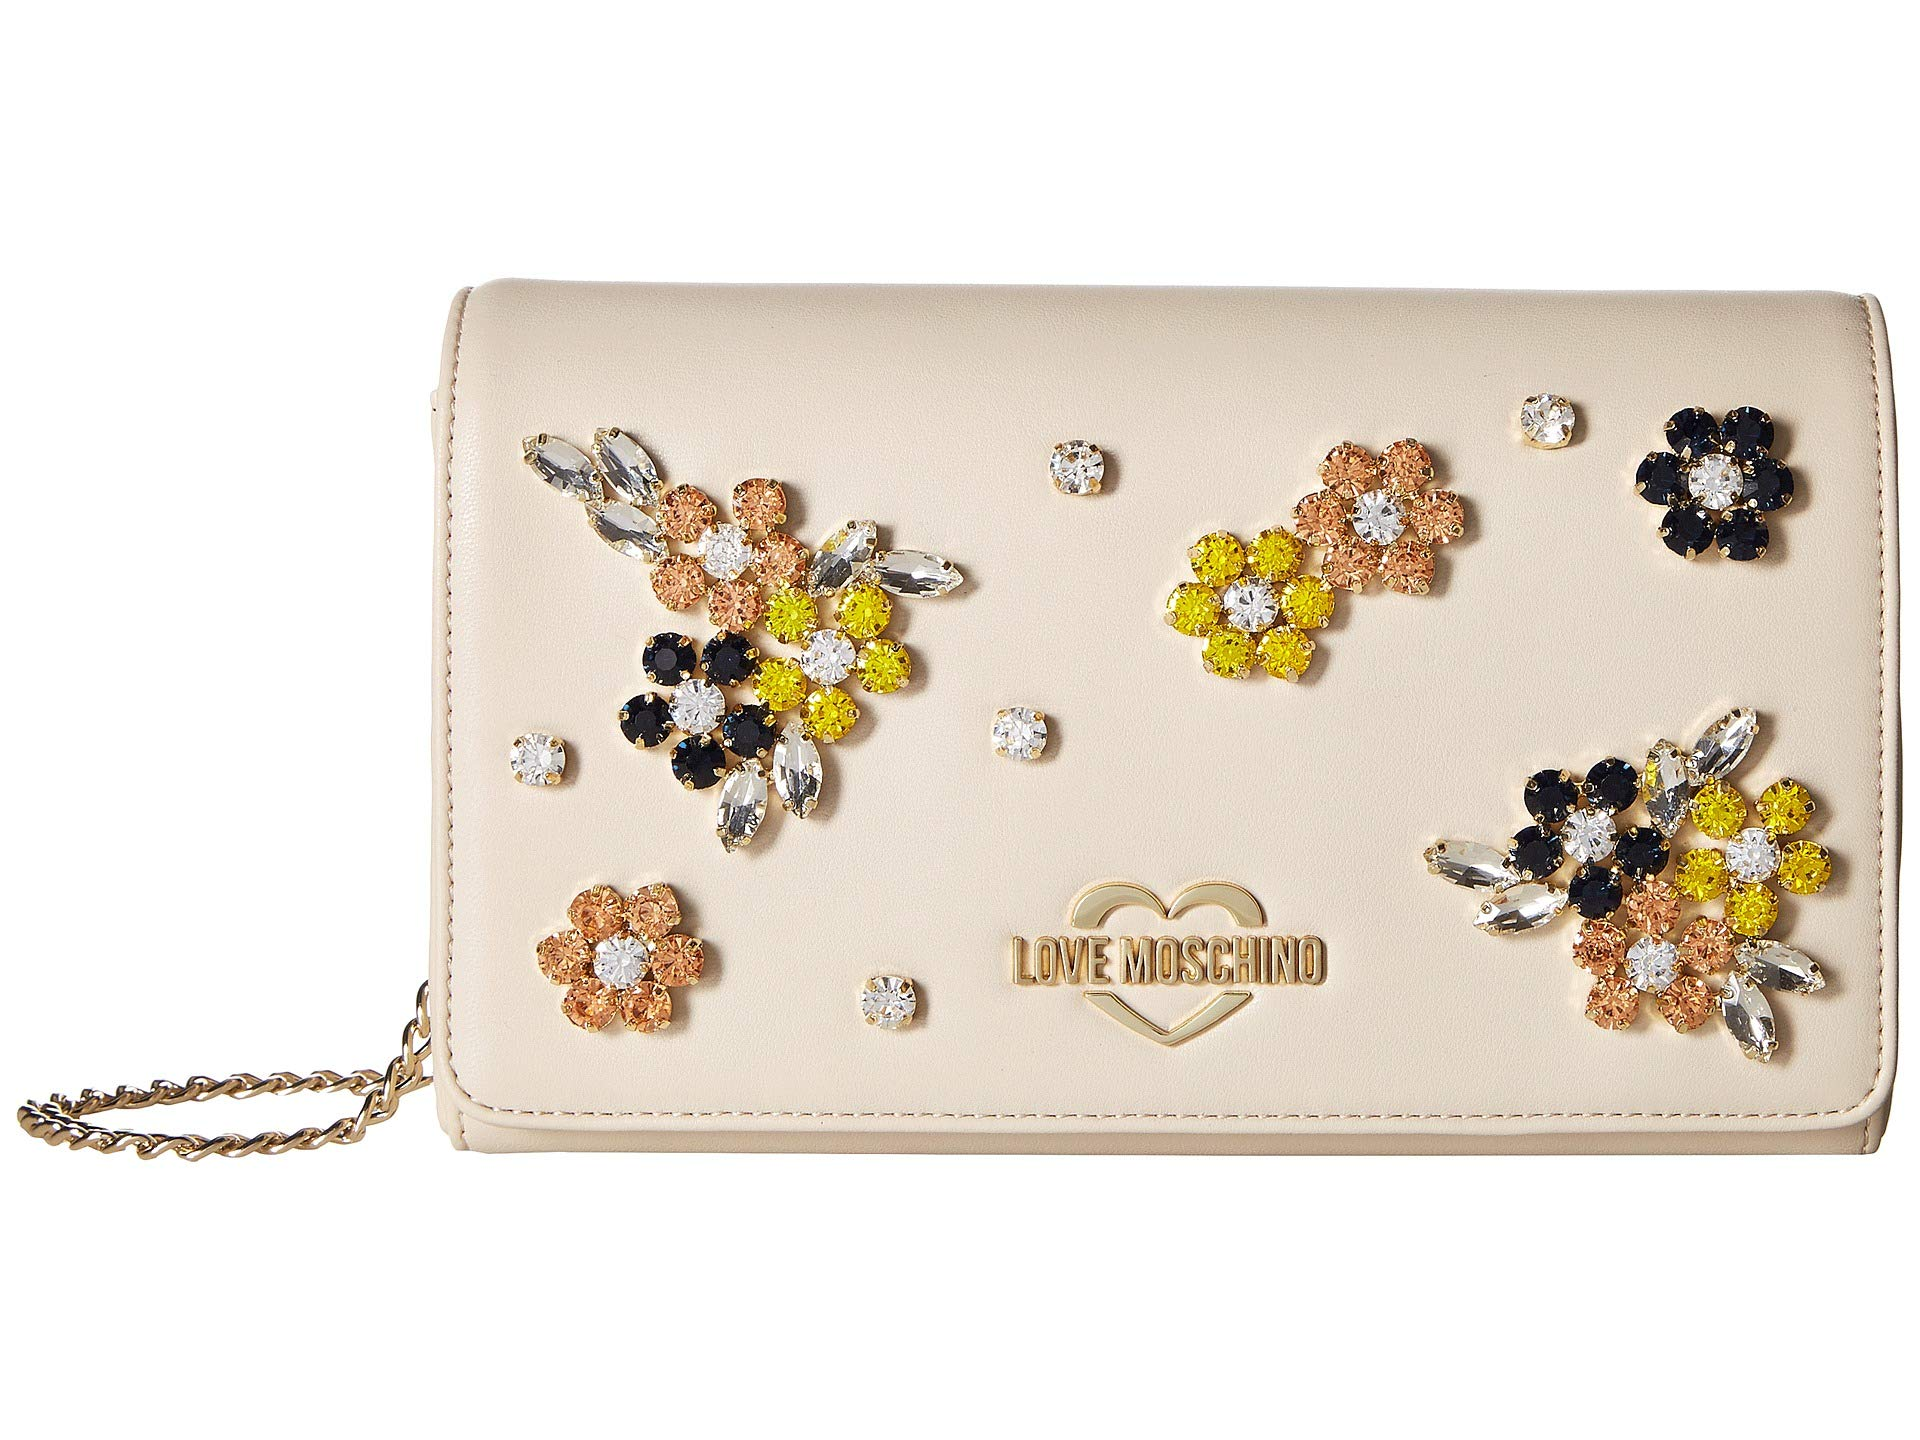 Flower With Ivory Hardware Moschino Love Evening Bag 1ASISq